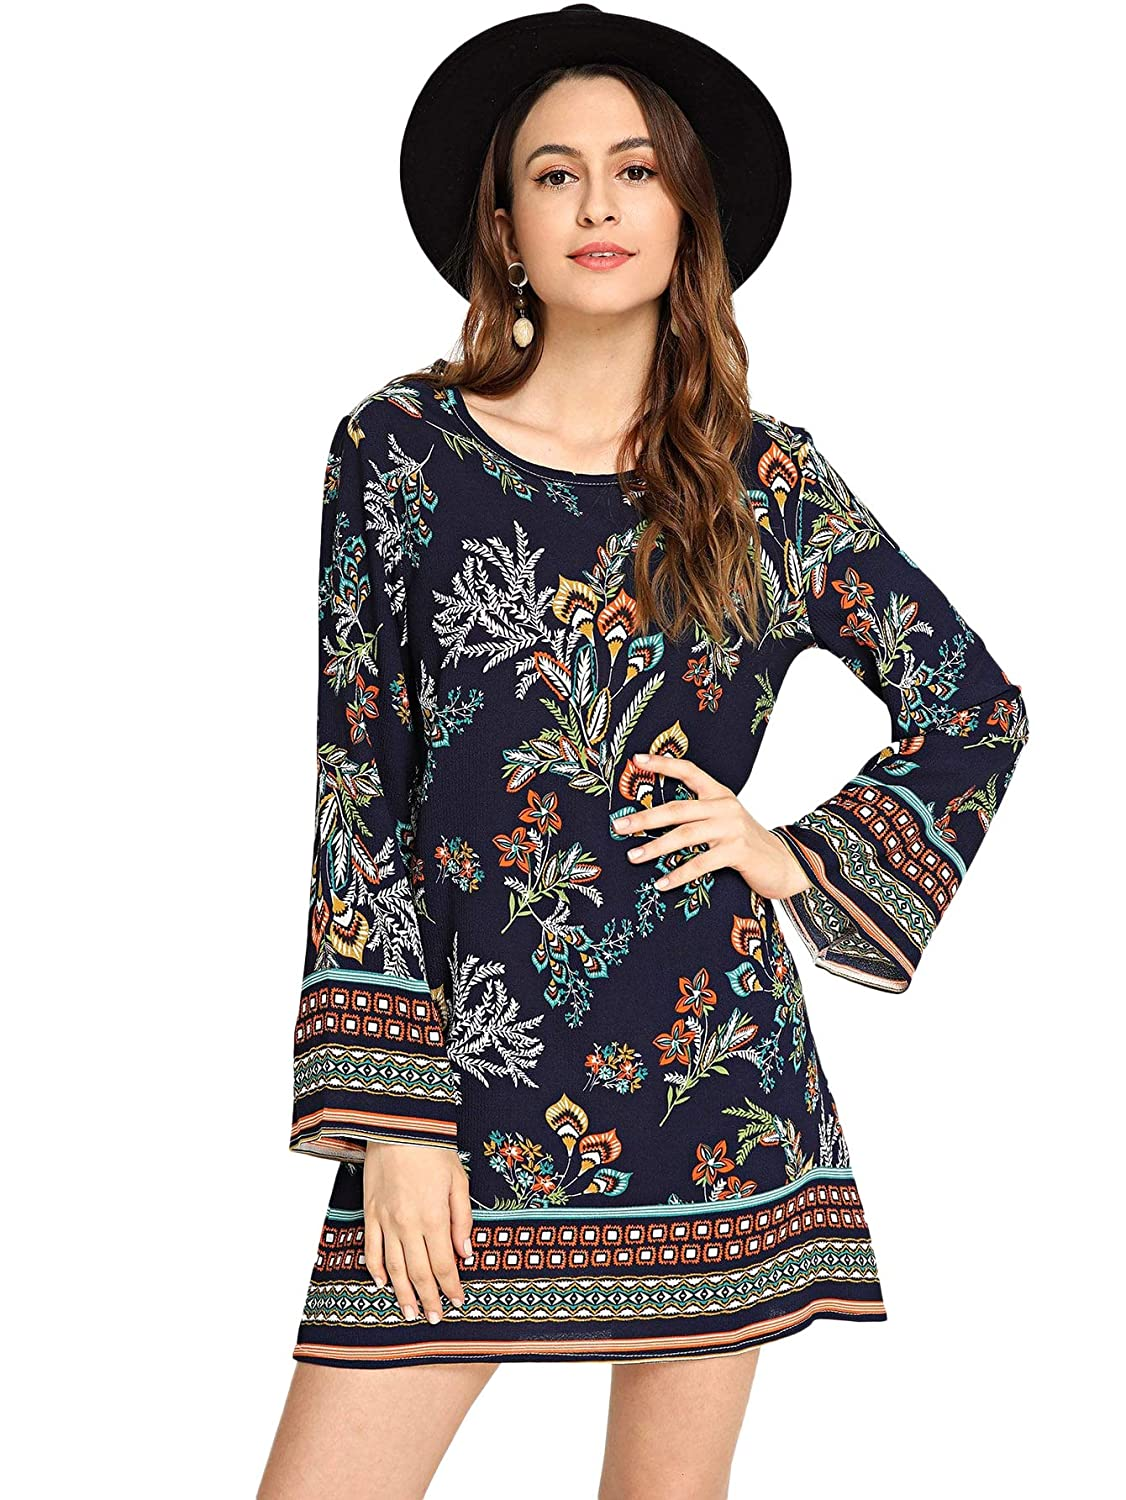 bluee SheIn Women's Long Sleeve Floral Print Casual Boho Tunic Dress